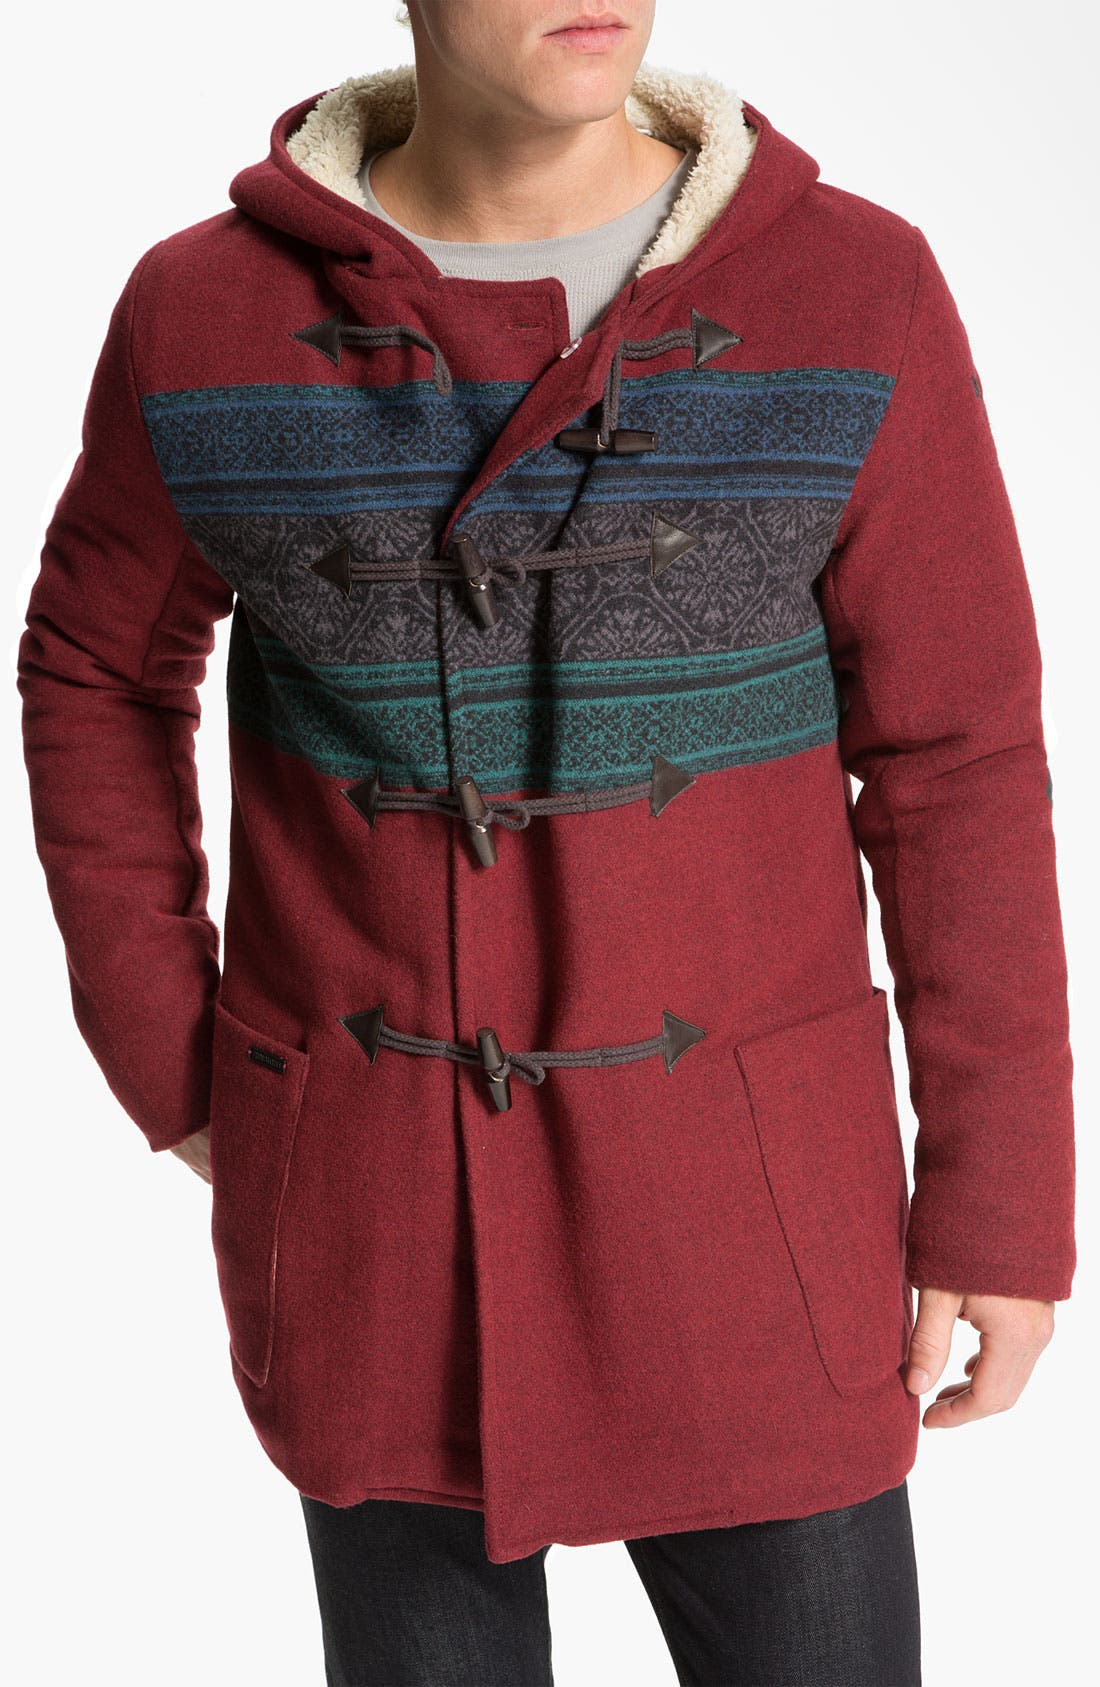 Alternate Image 1 Selected - Insight 'Downtown' Hooded Wool Blend Jacket